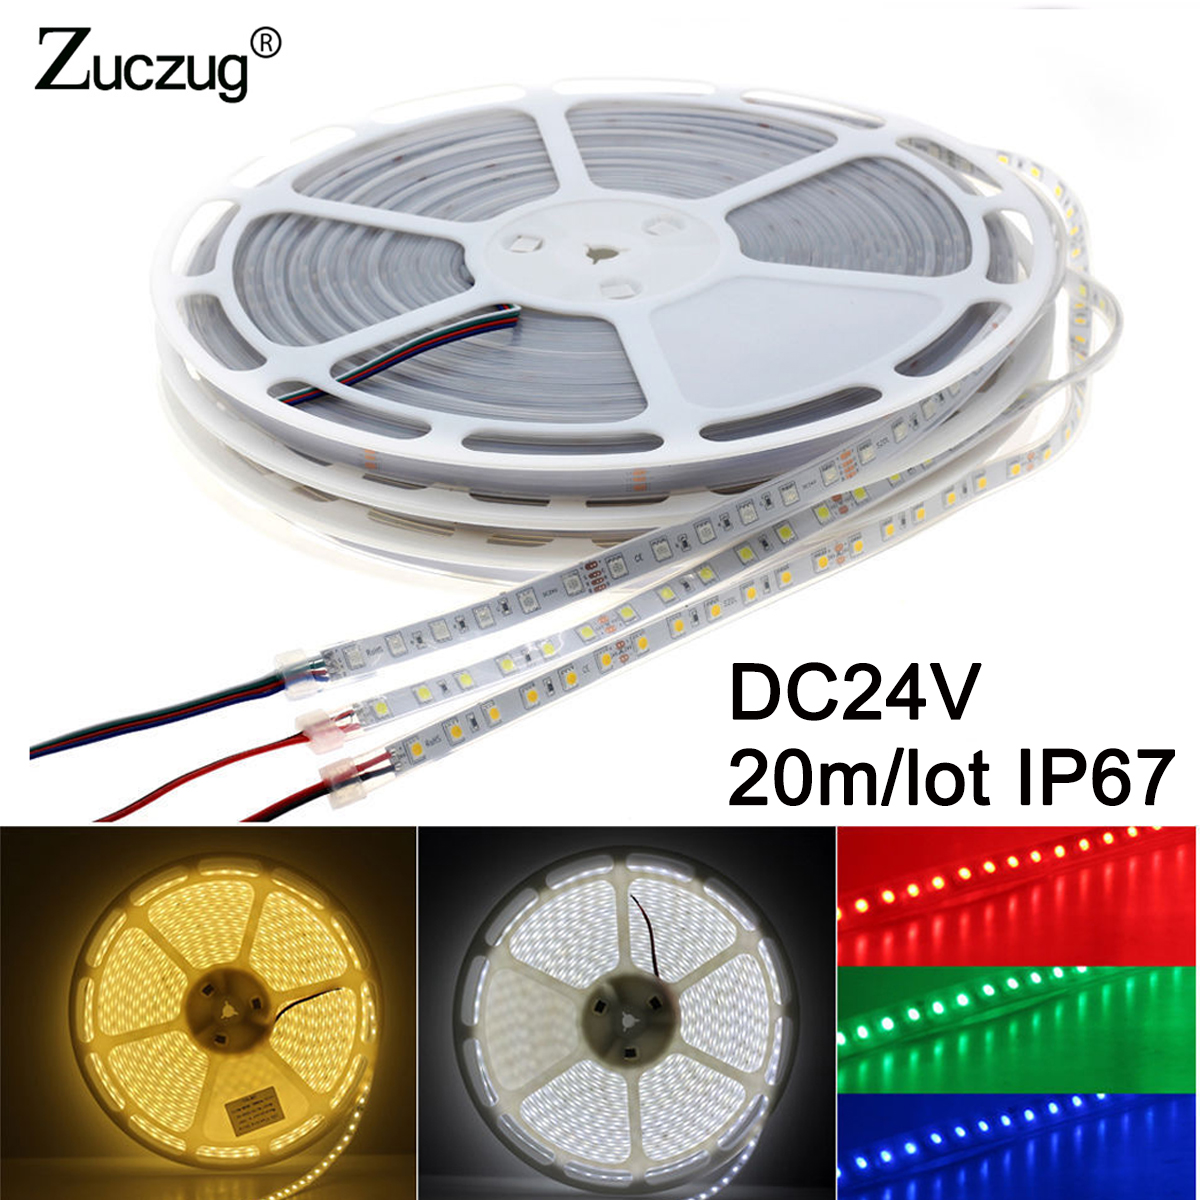 DC 24V 20m led strip light 5050 24 V volt silicon tube waterproof IP67 1200led cool